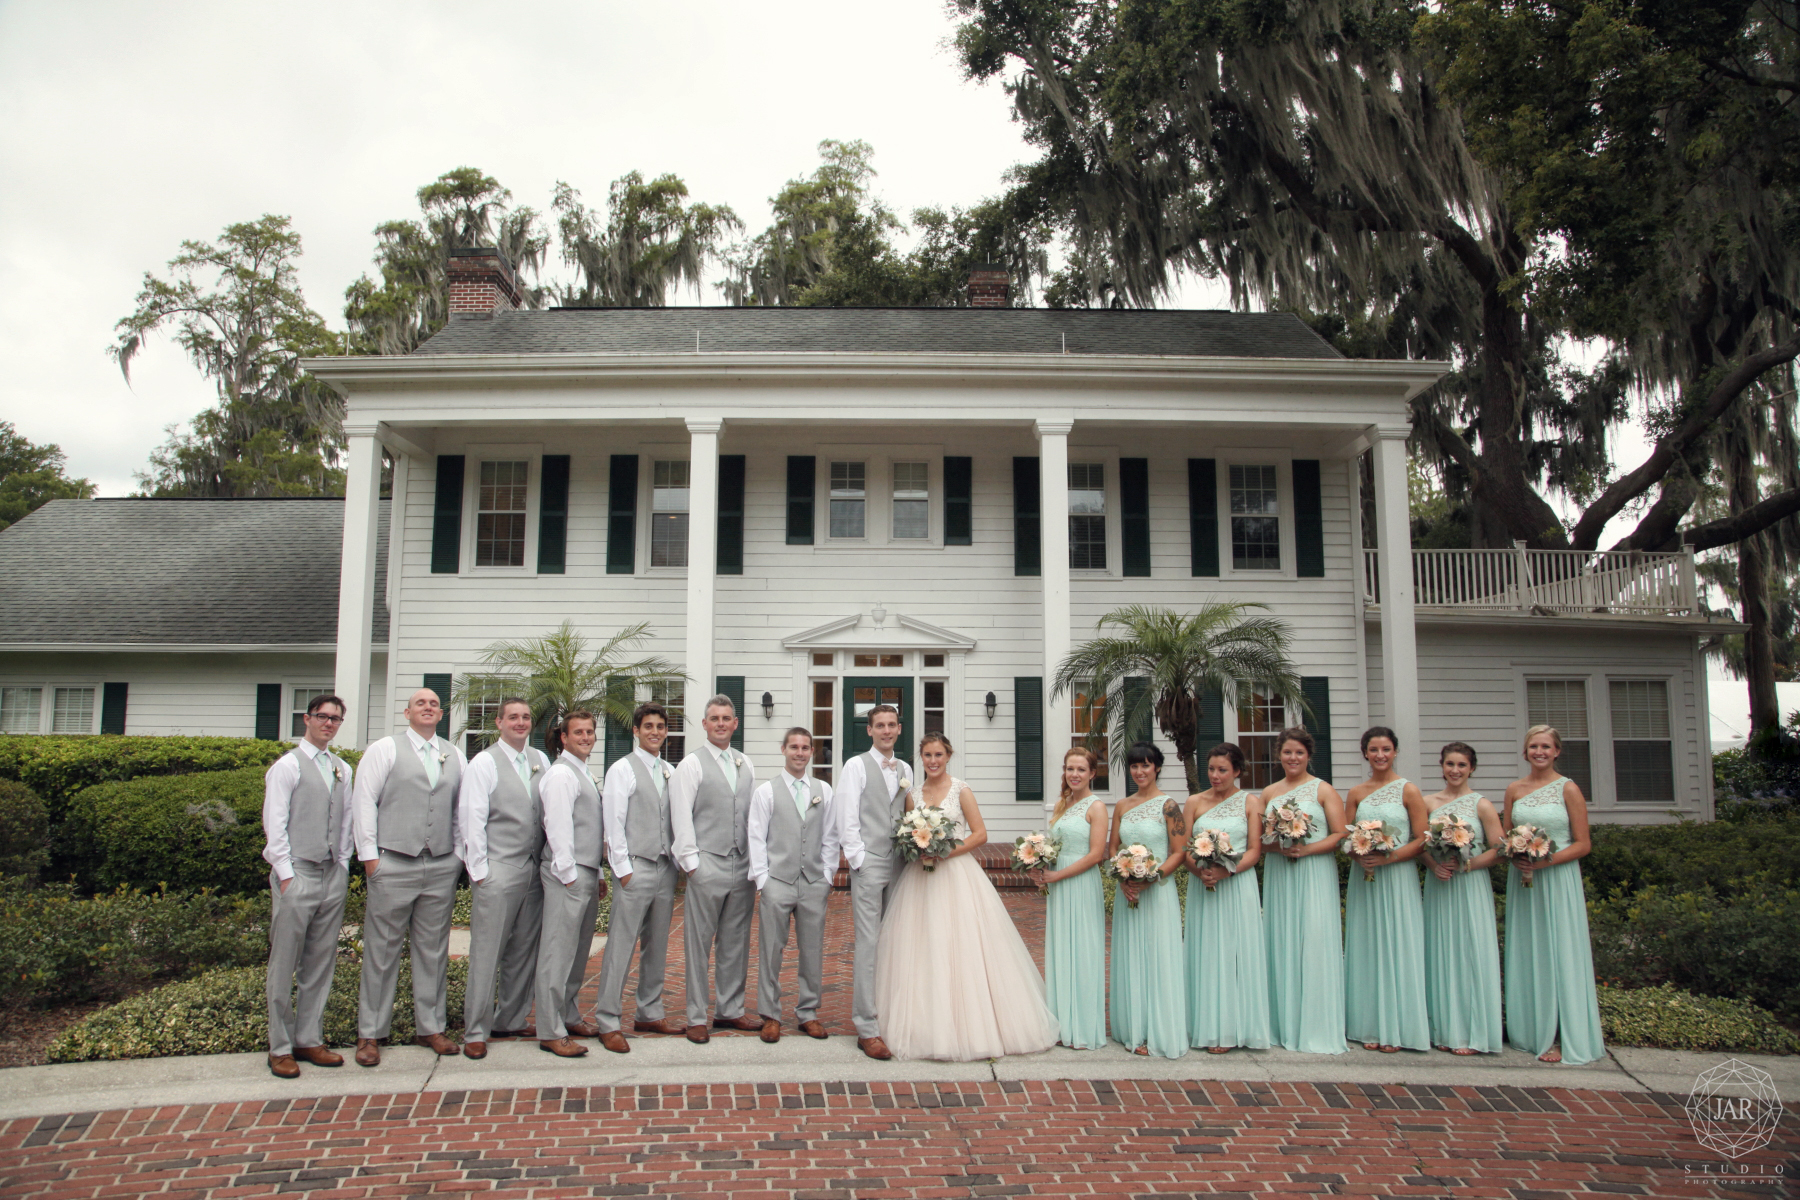 26-historic-cypress-grove-estate-wedding-portrait-orlando-photographer.JPG